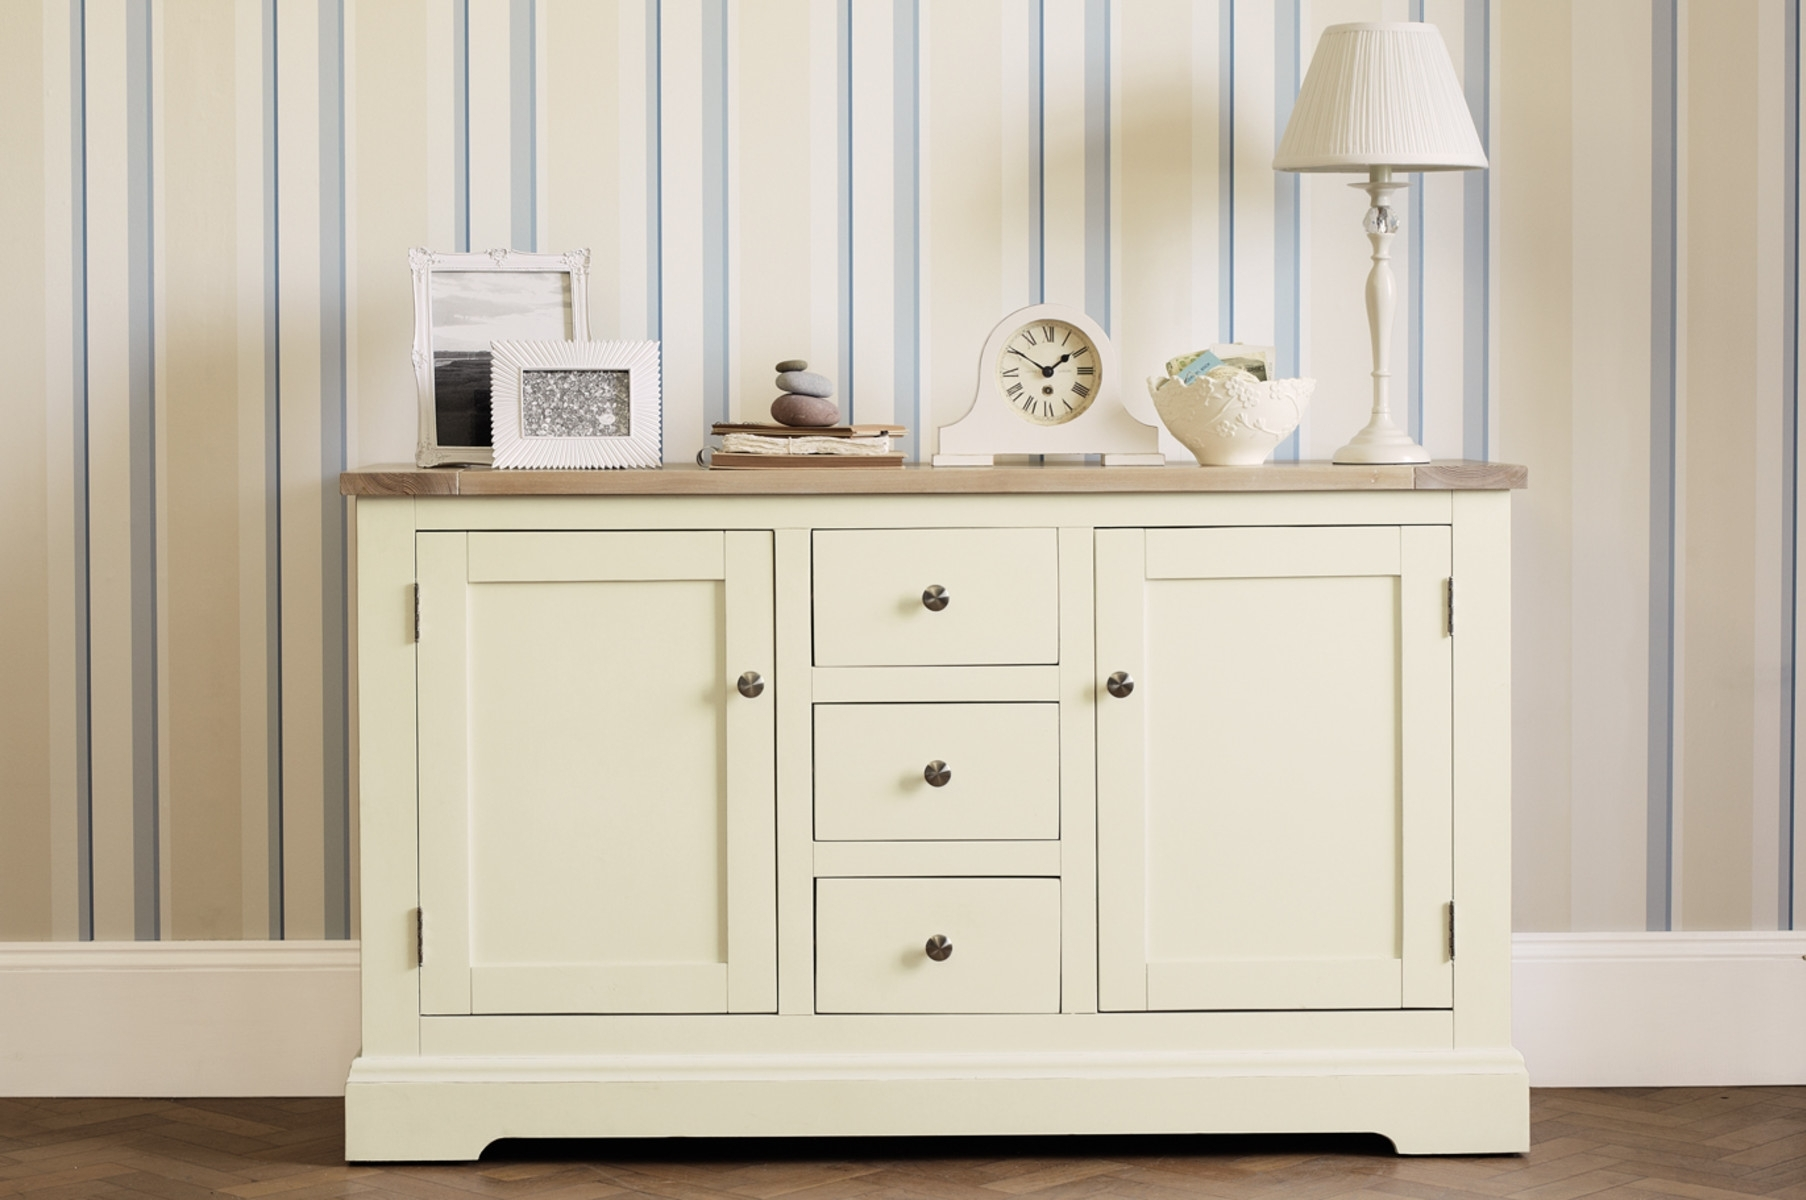 Made To Order Furniture – Dorset White 2 Door 3 Drawer Sideboard In 4 Door 3 Drawer White Wash Sideboards (View 21 of 30)